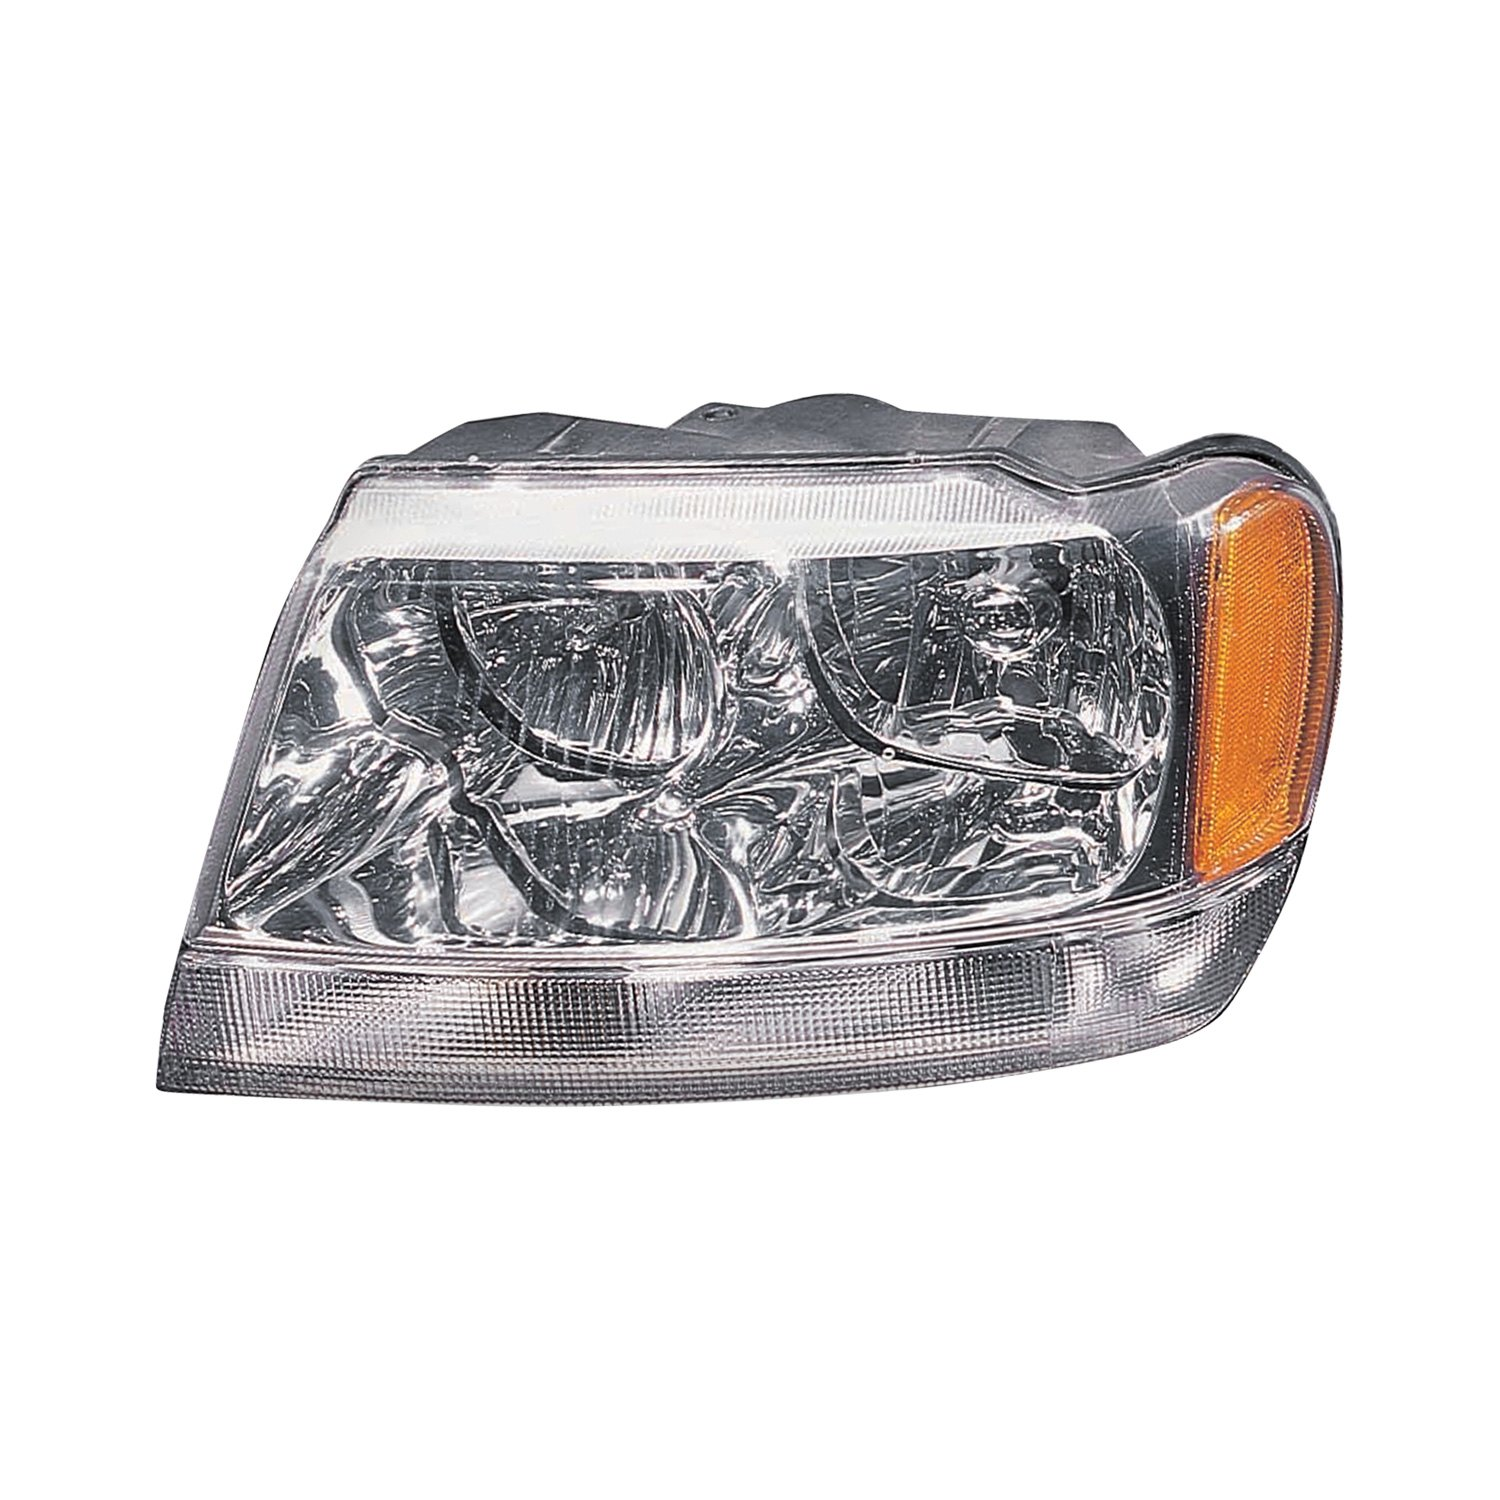 replace jeep grand cherokee limited overland 2002 2004 replacement headlight. Black Bedroom Furniture Sets. Home Design Ideas